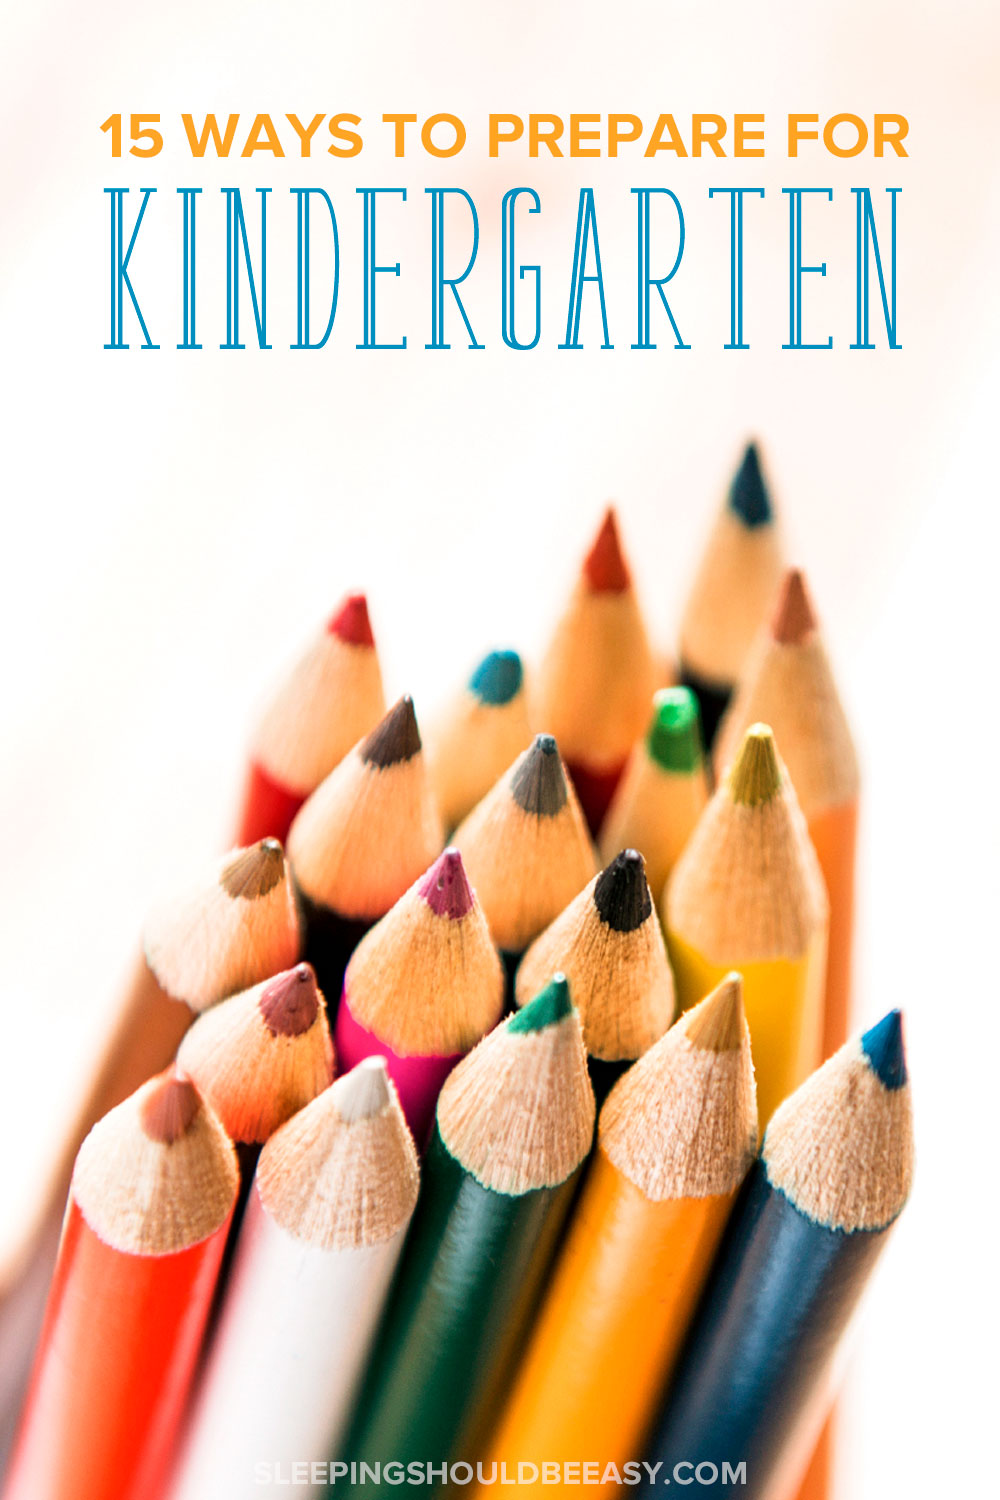 Practical tips for getting ready for kindergarten. From using scissors to learning the alphabet, here are 15 ways to prepare for kindergarten.